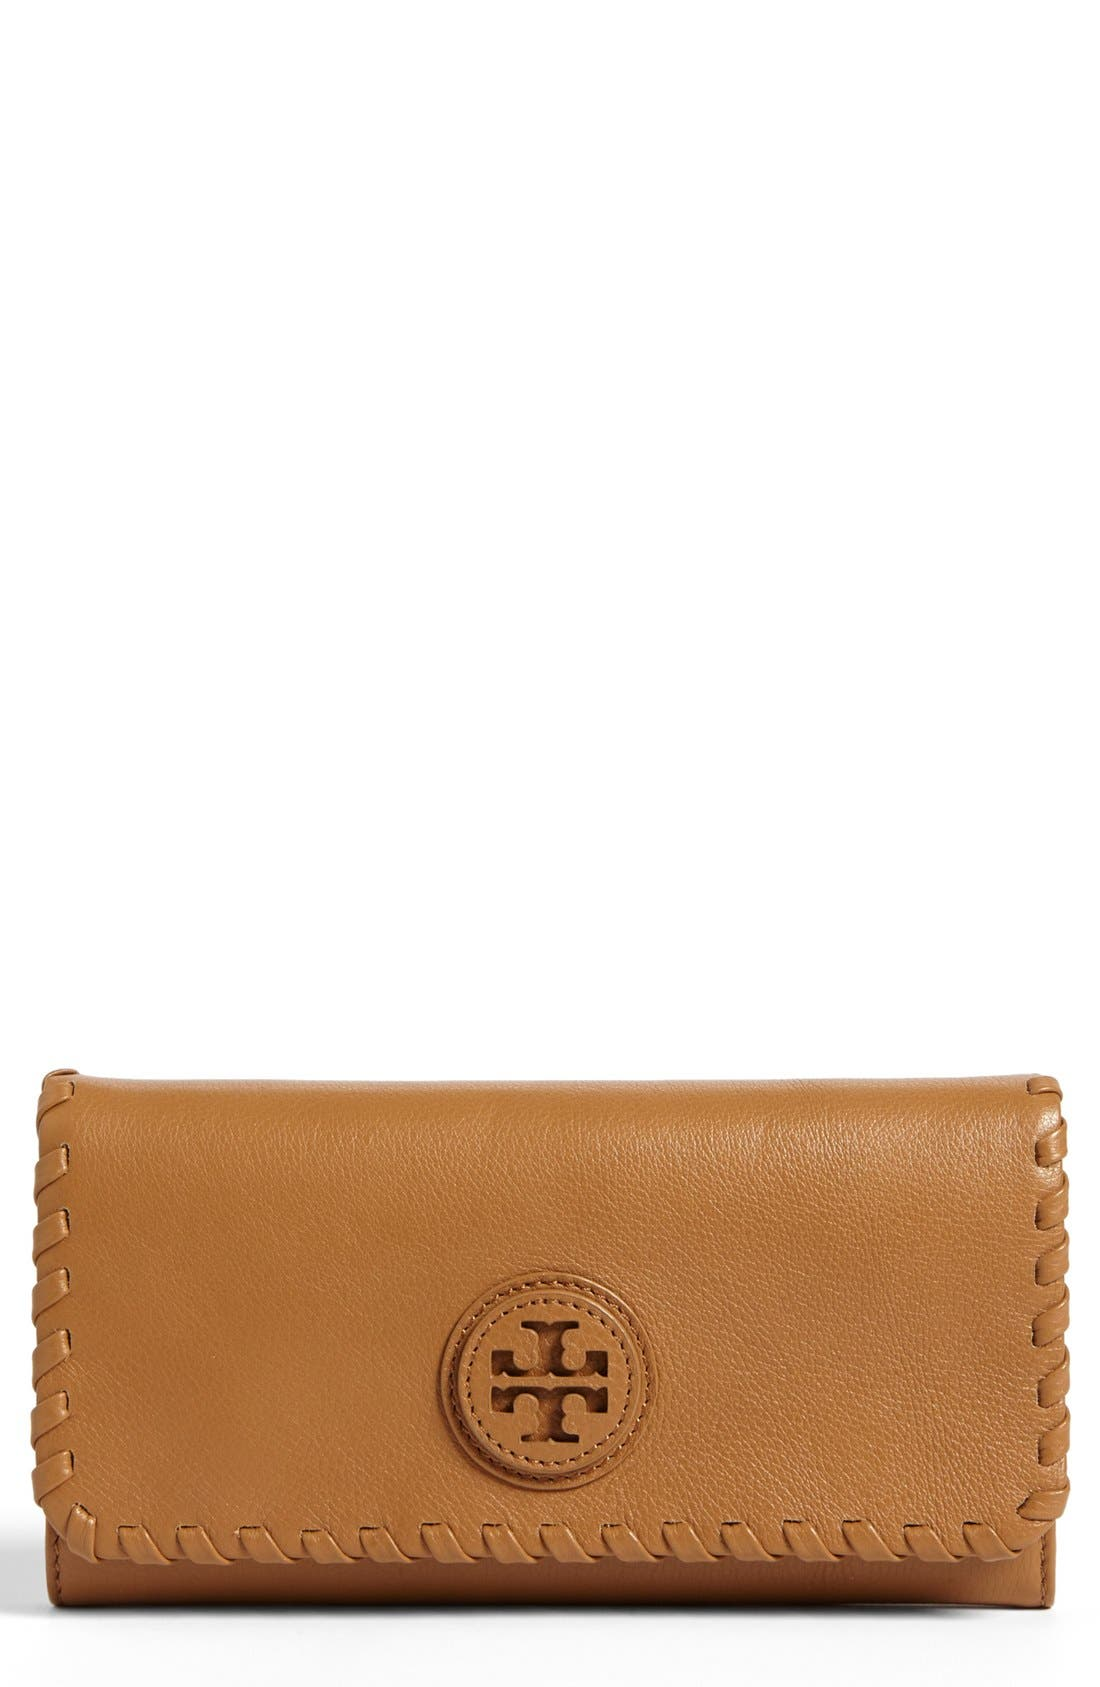 Alternate Image 1 Selected - Tory Burch 'Marion' Envelope Continental Wallet